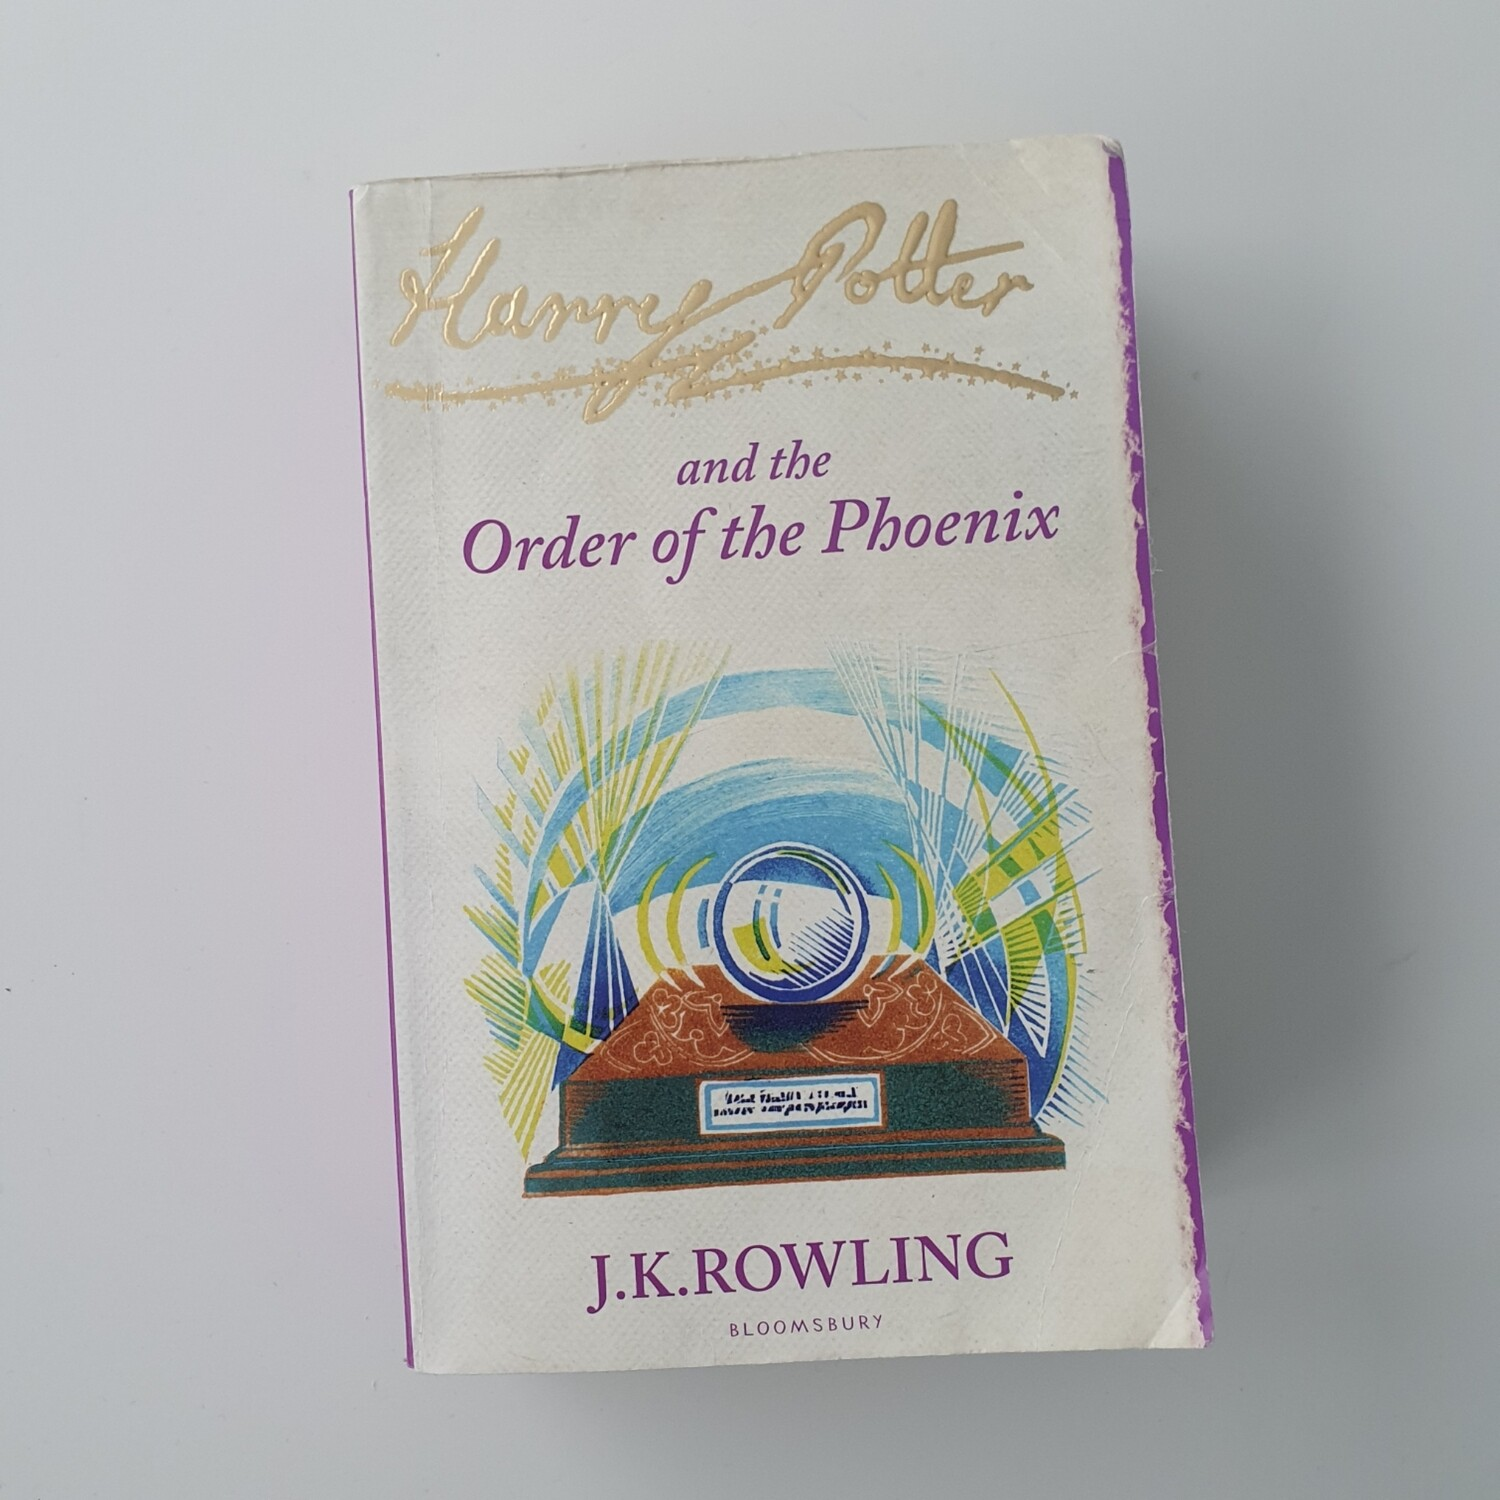 Harry Potter and the Order of the Phoenix - made from a paperback book